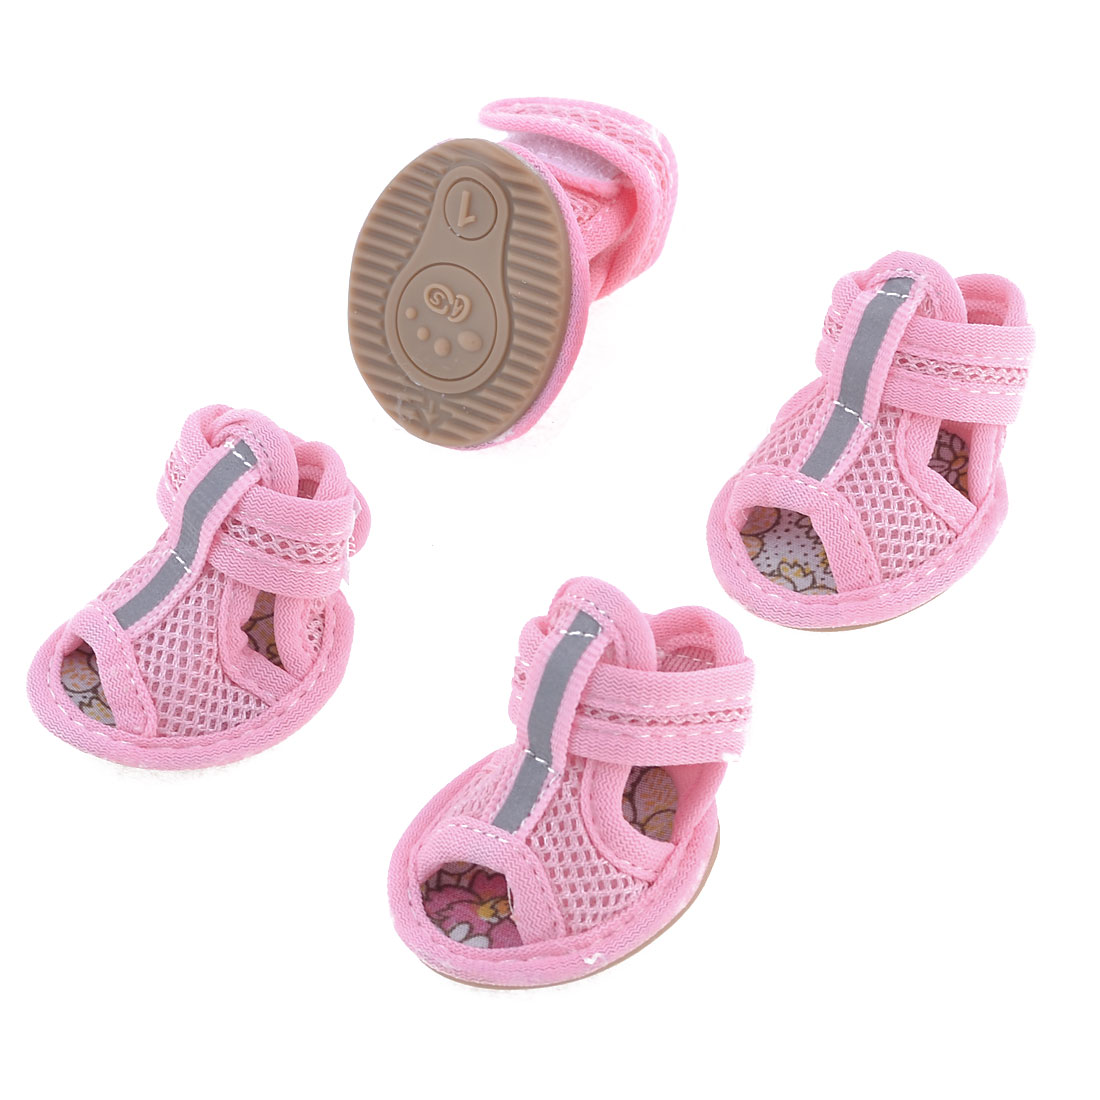 Dog Rubber Shoes Sole Mesh Yorkie Chihuaha Pink XXS 2 Pairs